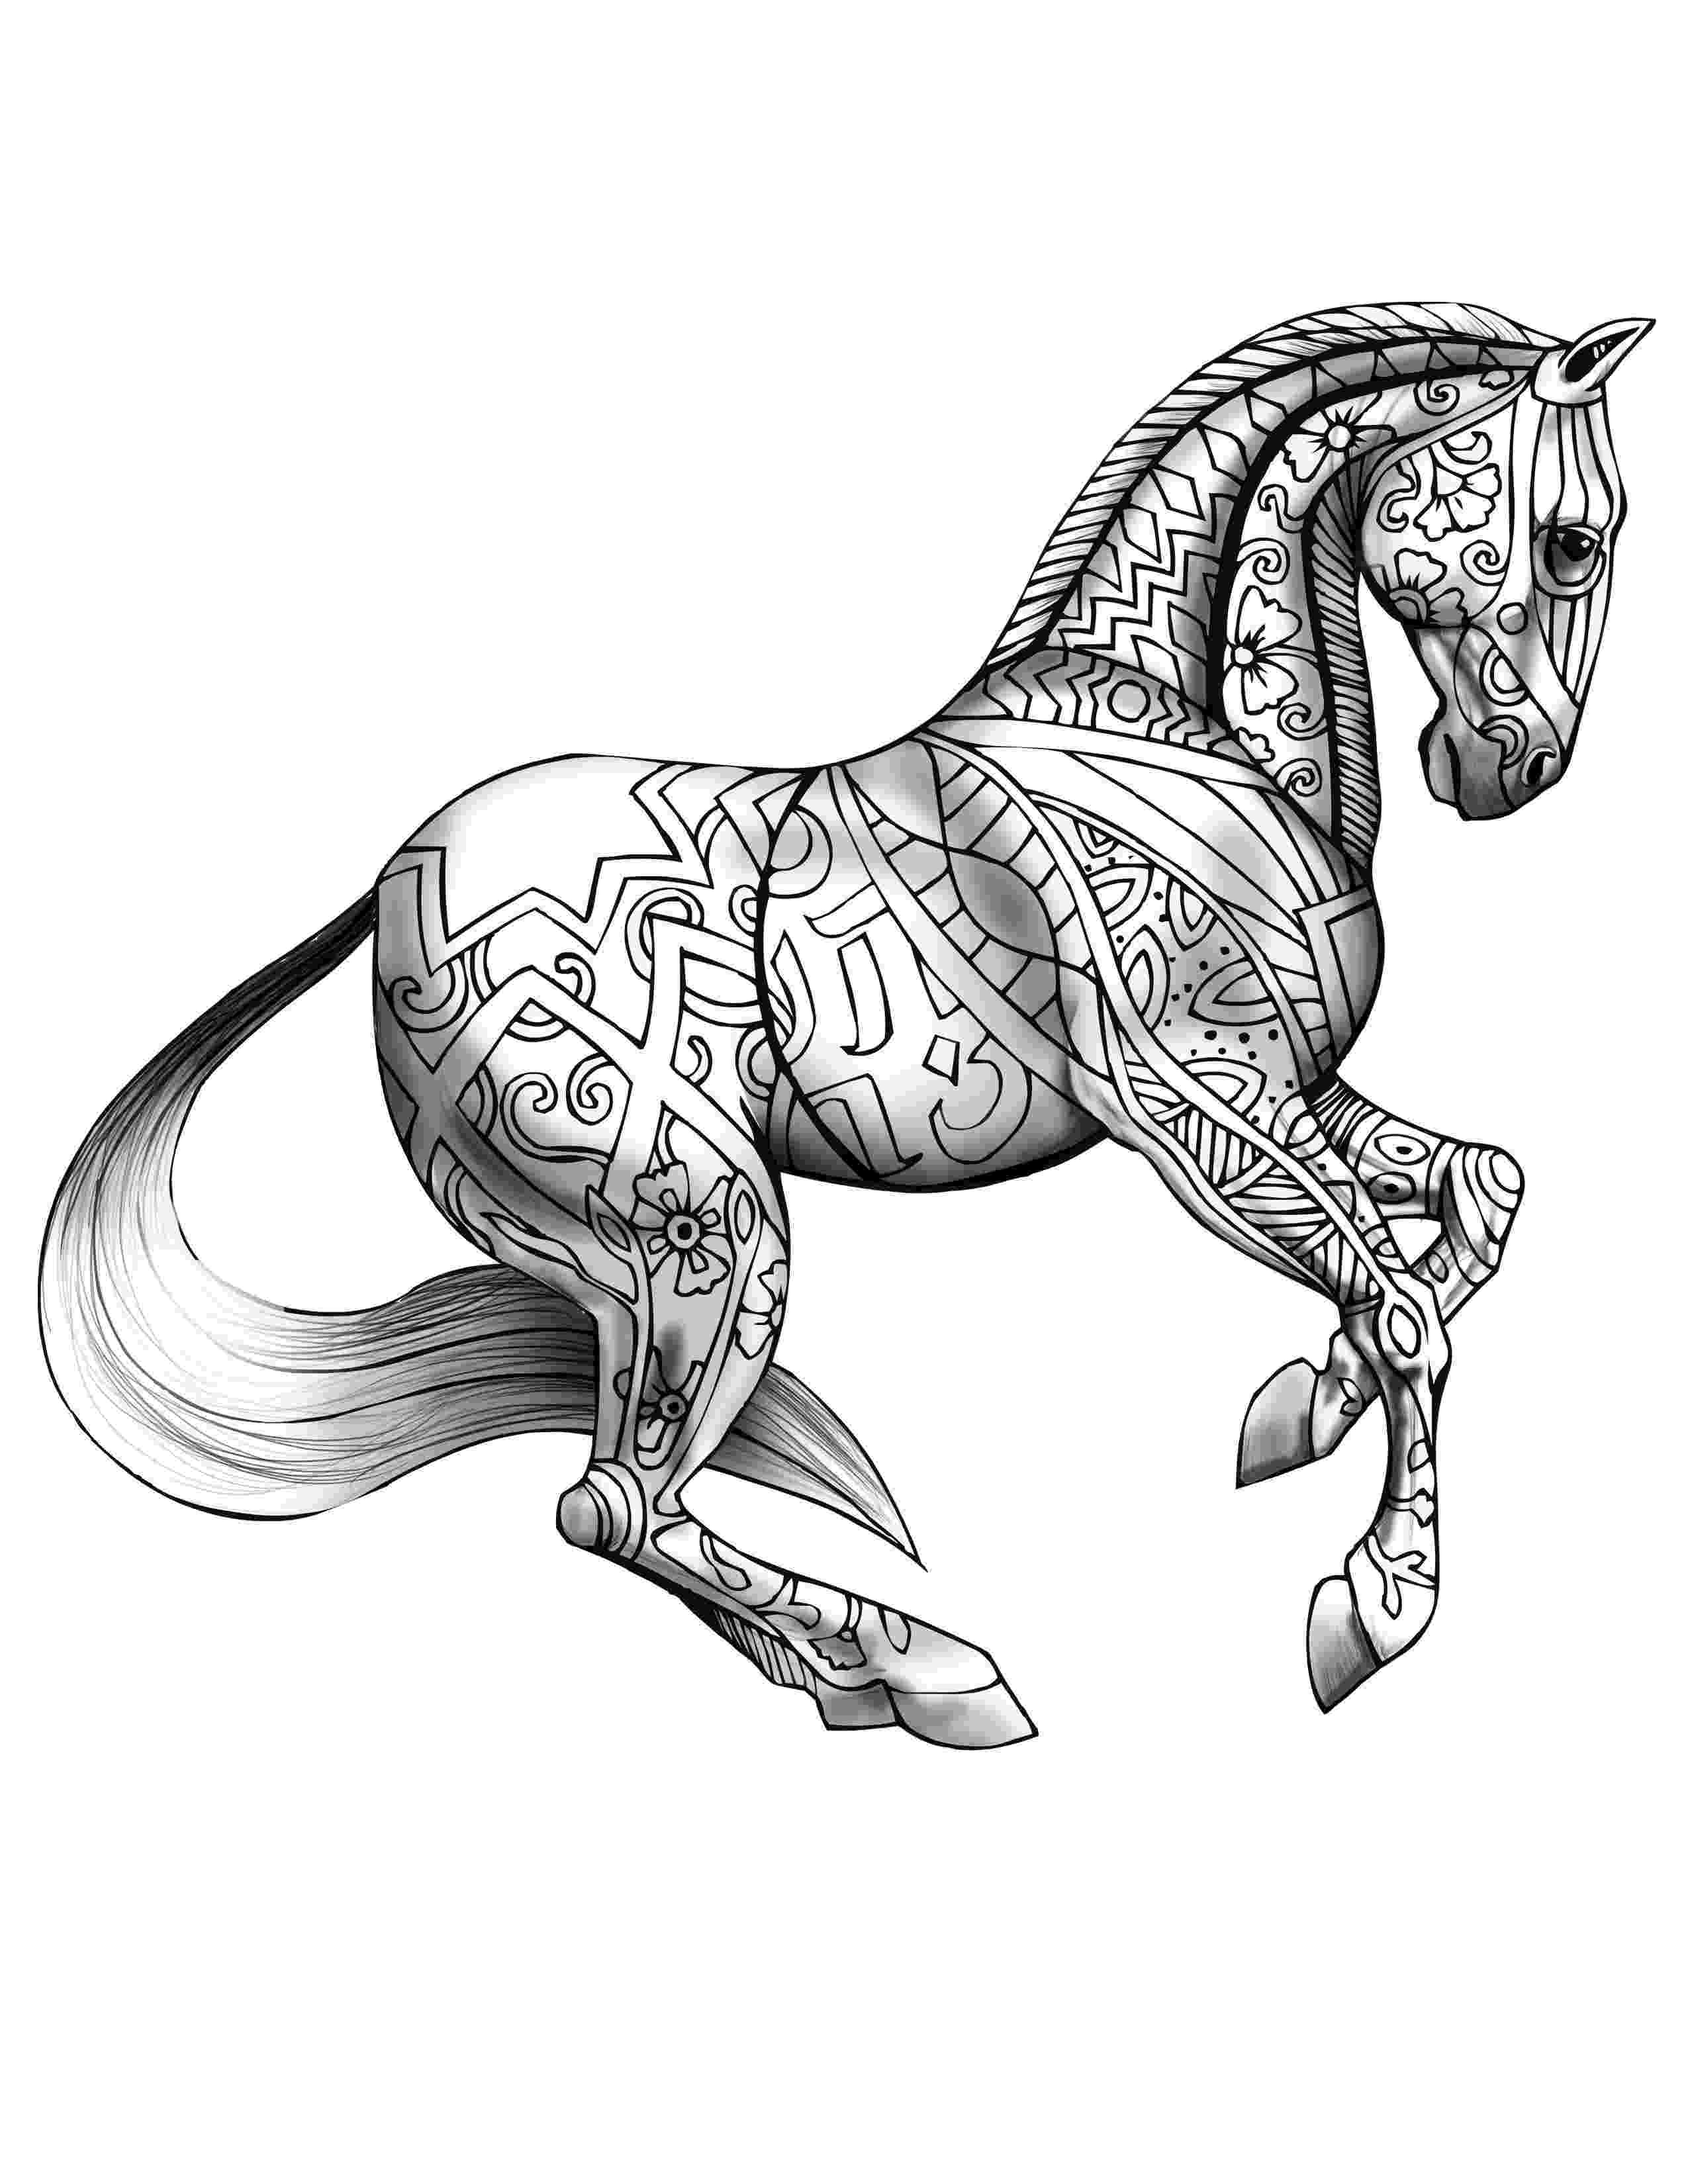 horse colouring picture horse riding coloring pages download and print for free picture colouring horse